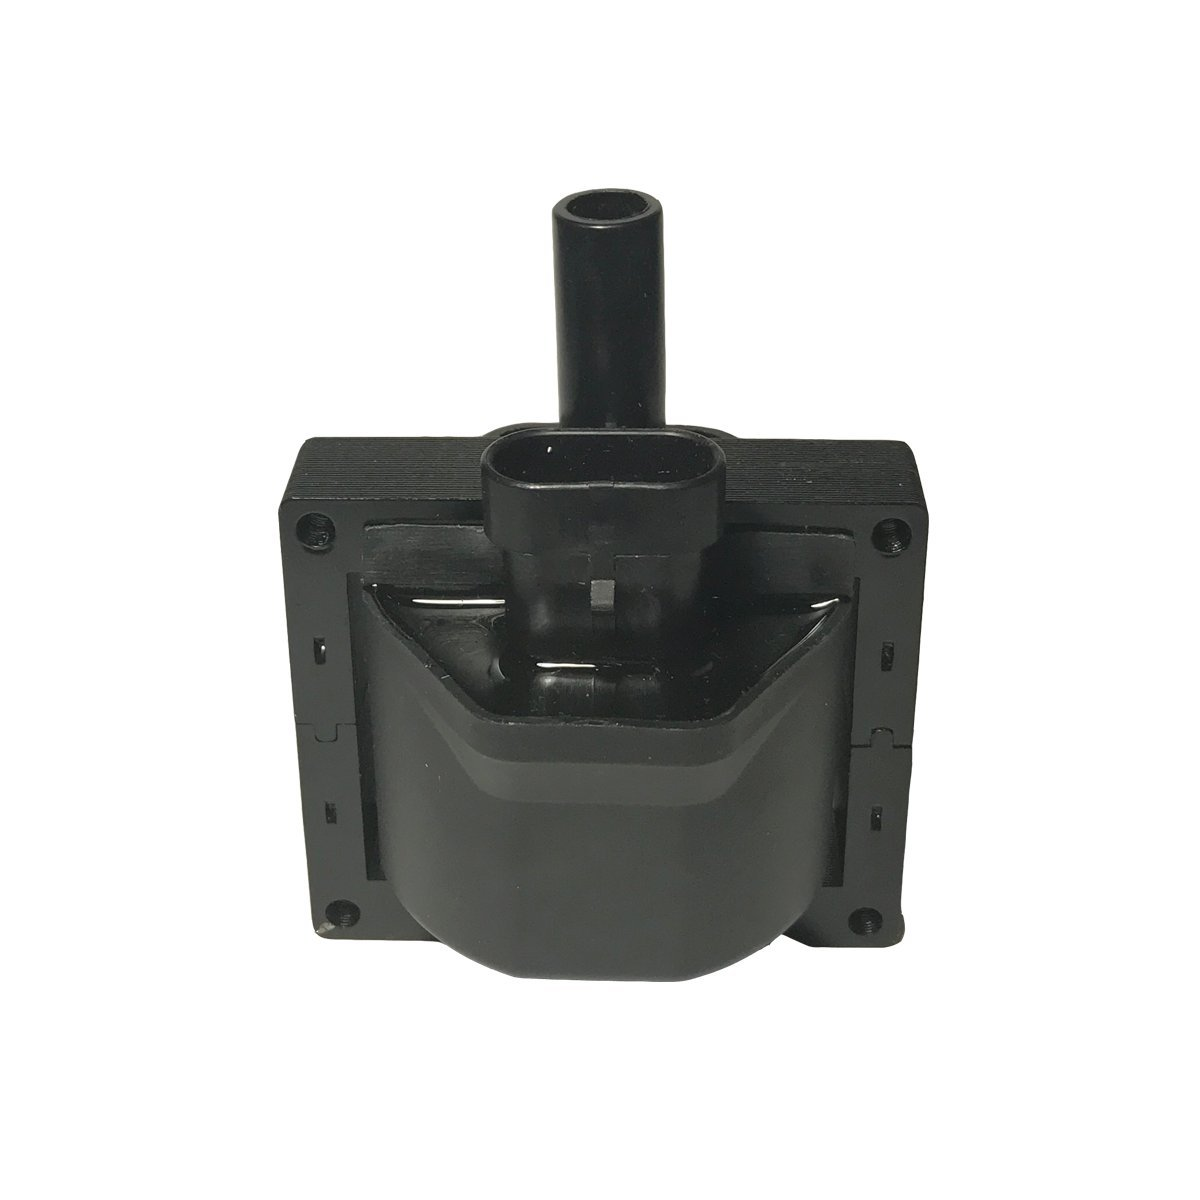 Get Quotations · Ignition Coil - Replaces GM #10489421 & ACDelco # D577 -  Fits Chevrolet, GMC